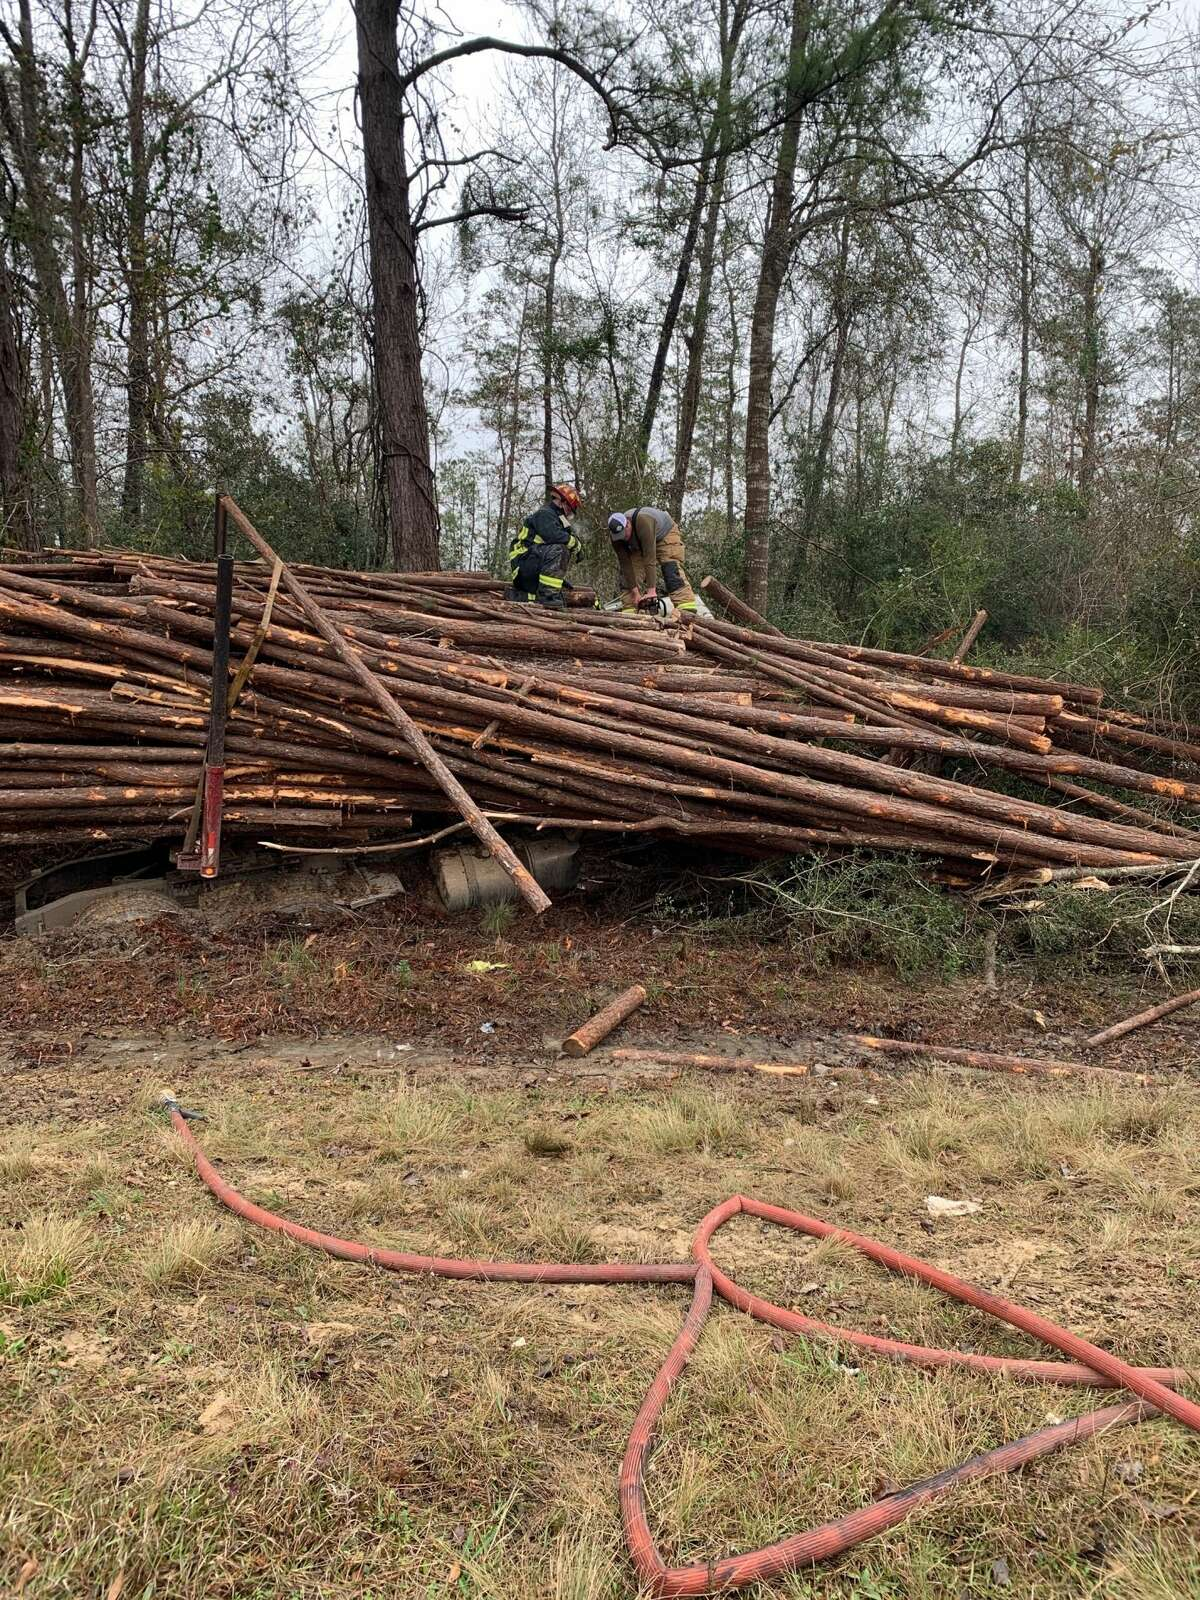 The driver of a log truck died Feb. 6, 2020 following a wreck in Orange County. Photo provided by Eric Williams